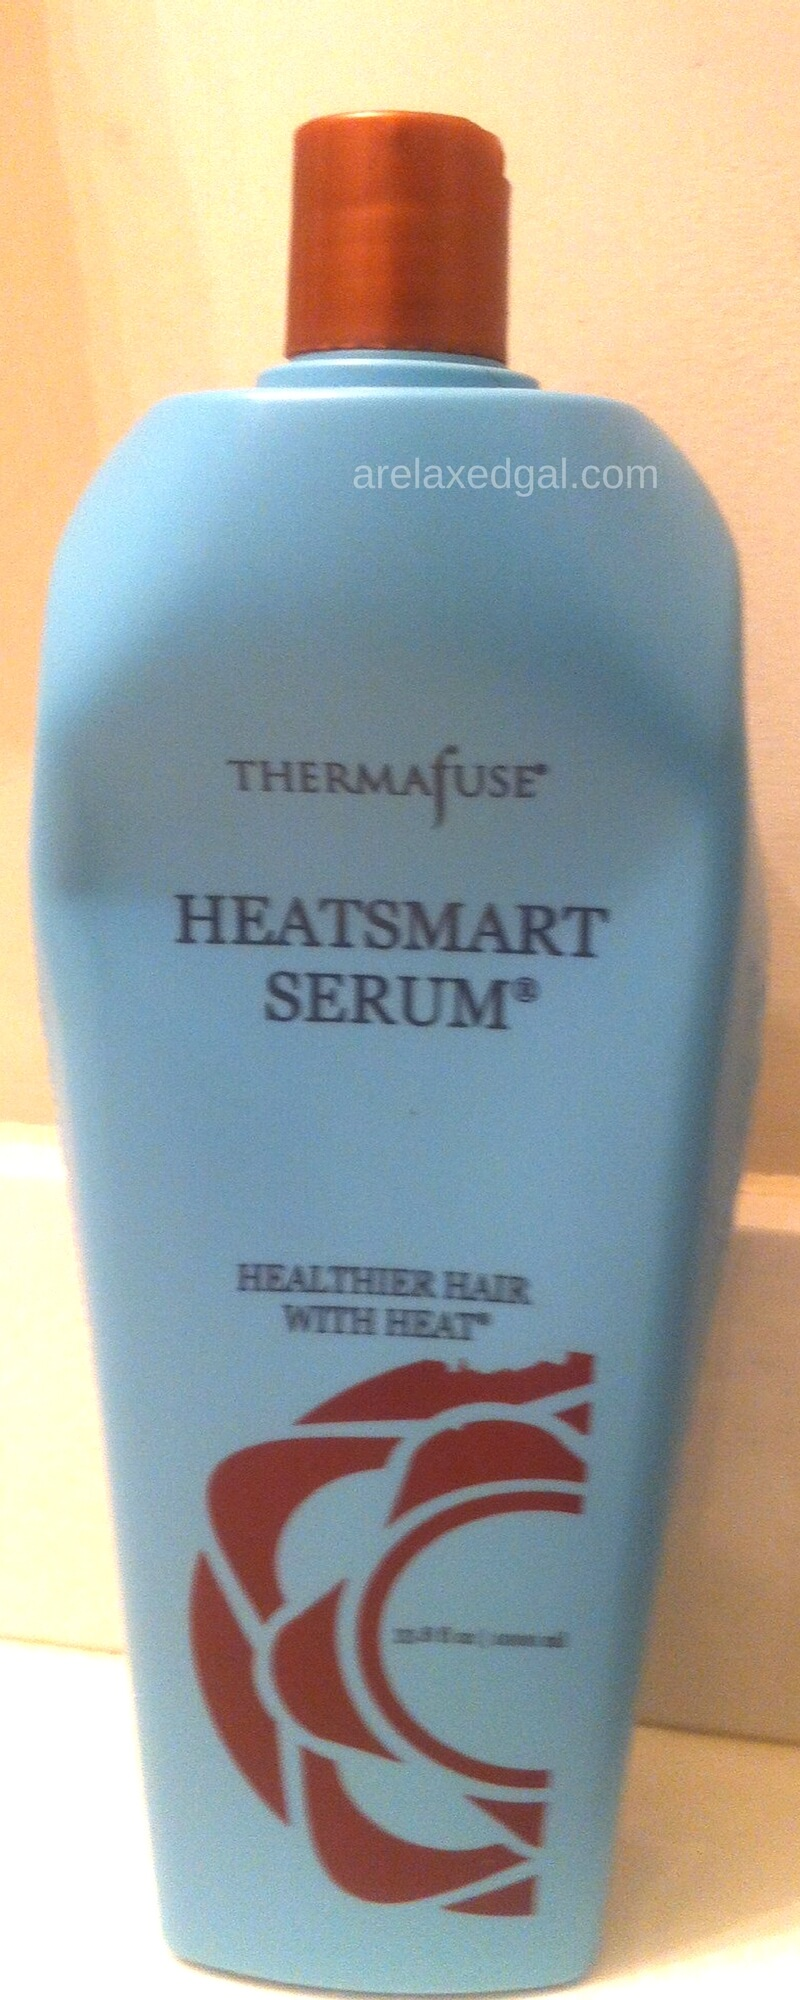 If you're looking for a salon level conditioner for curly, frizzy, dry or damaged hair Thermafuse's HeatSmart Serum Condition is one to consider for your relaxed hair.   arelaxedgal.com